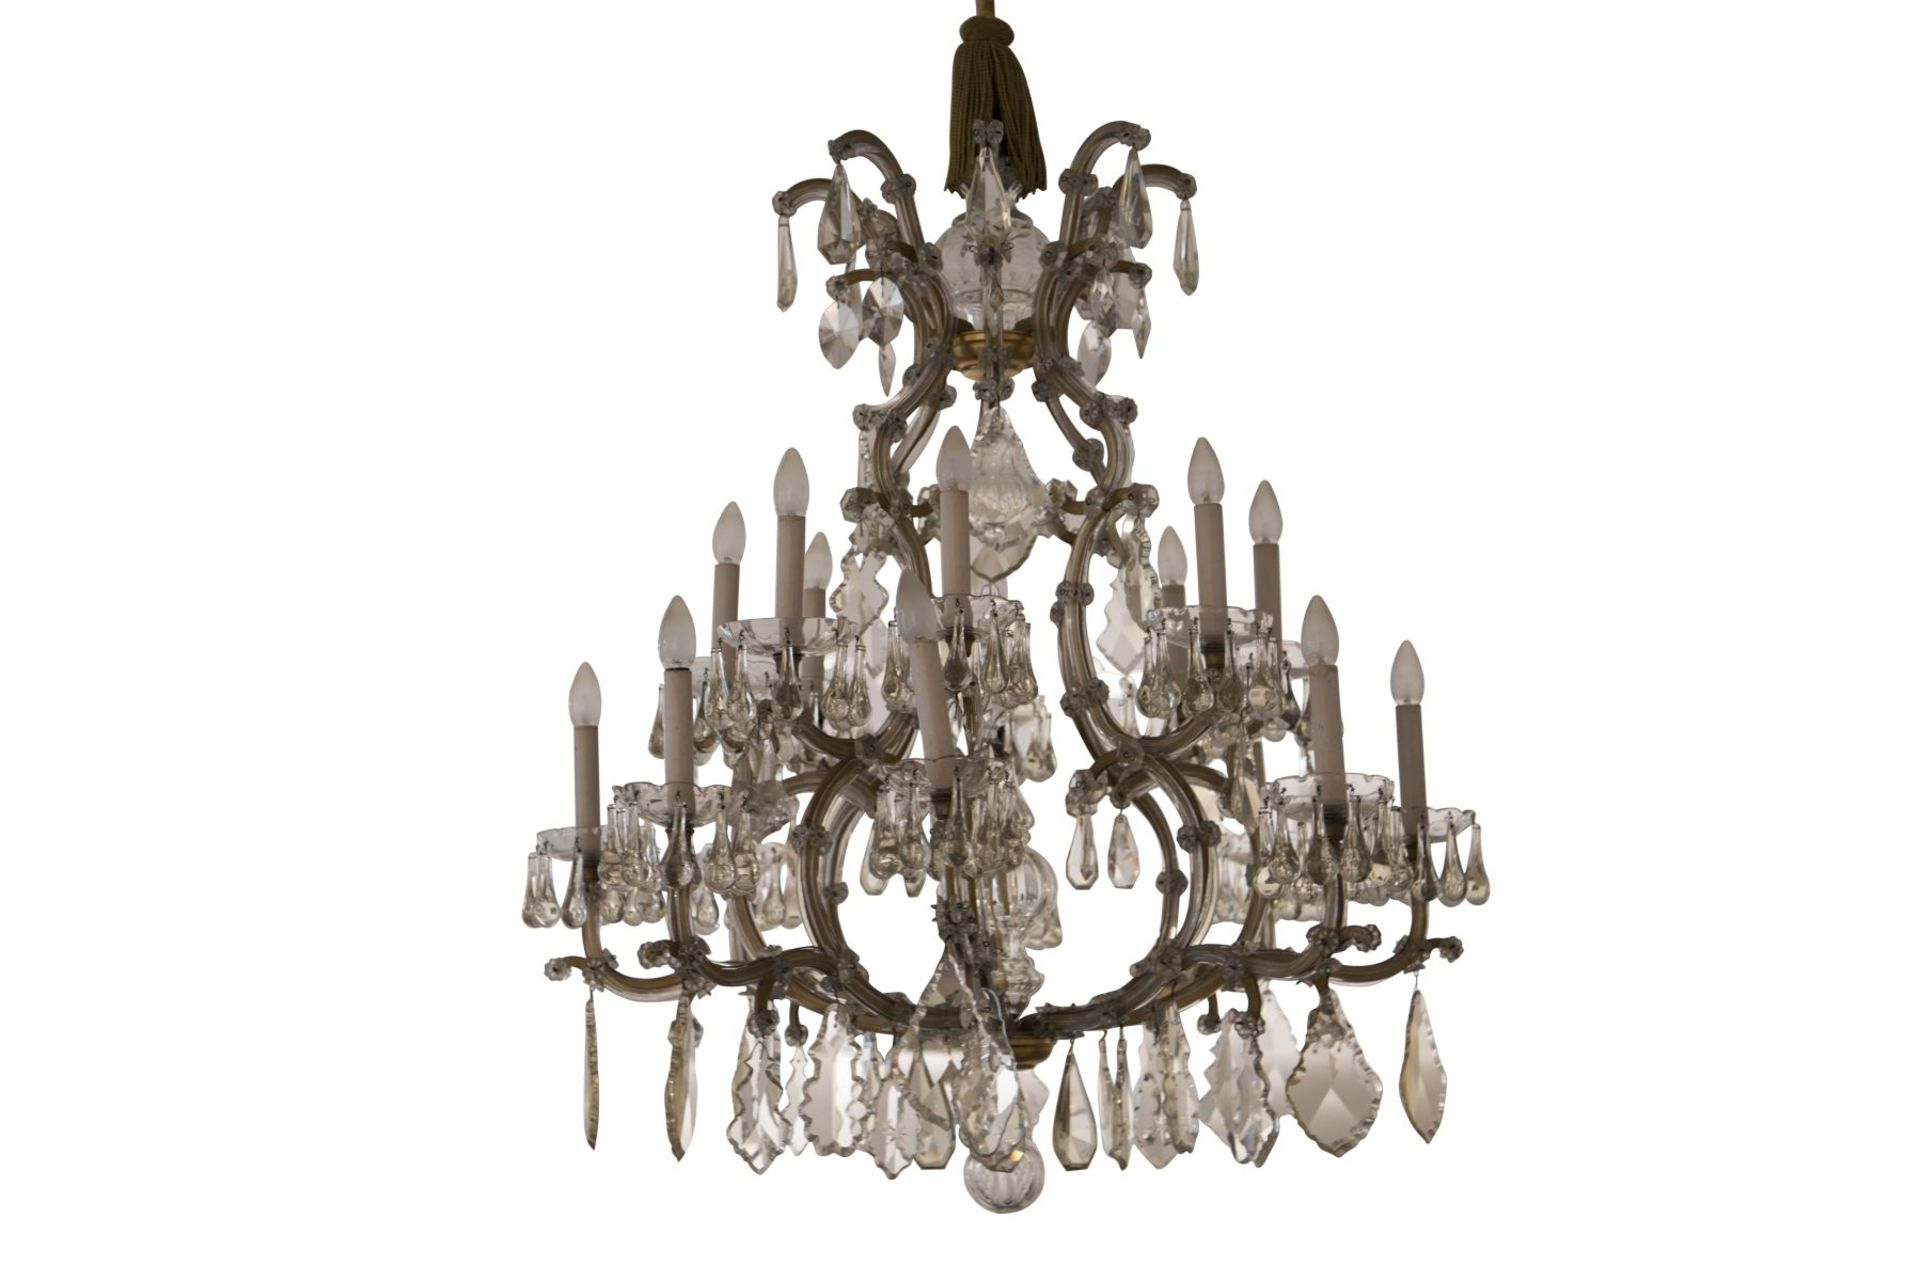 "Decorative Salon Chandelier ""Maria Theresa Style"" - Image 2 of 8"